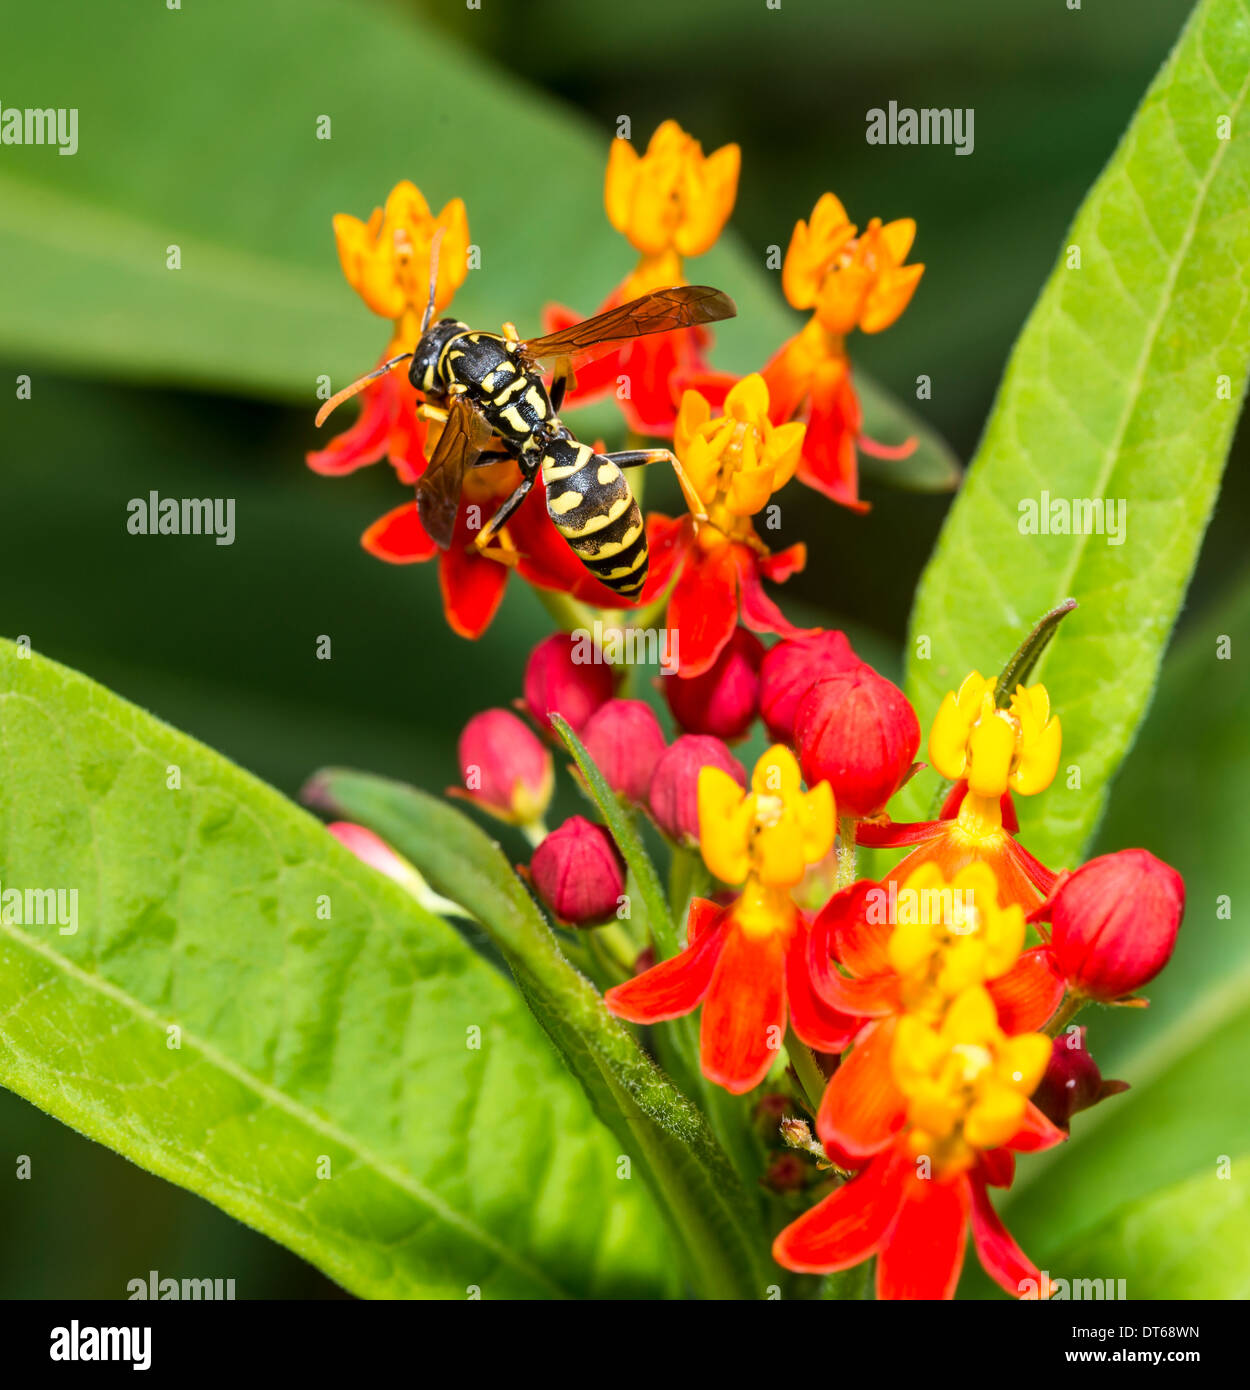 Yellow jacket is the common name in North America for predatory wasps of the genera Vespula and Dolichovespula - Stock Image